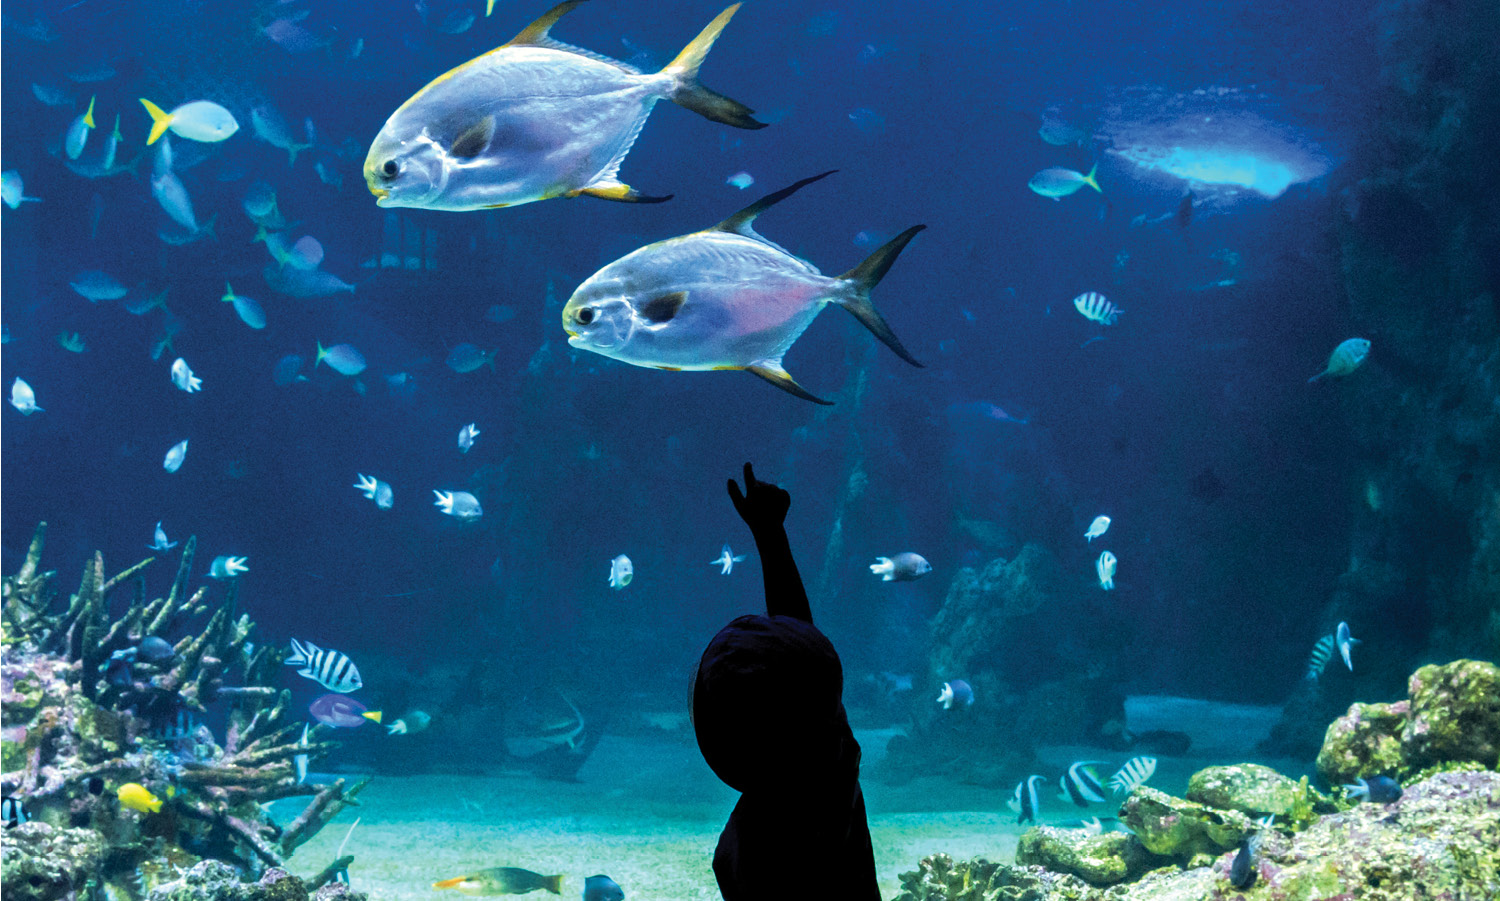 Silhouette of young child in front of a large aquarium. The child is pointing to 3 large fish, and there are many smaller fish in the background of the aquarium.